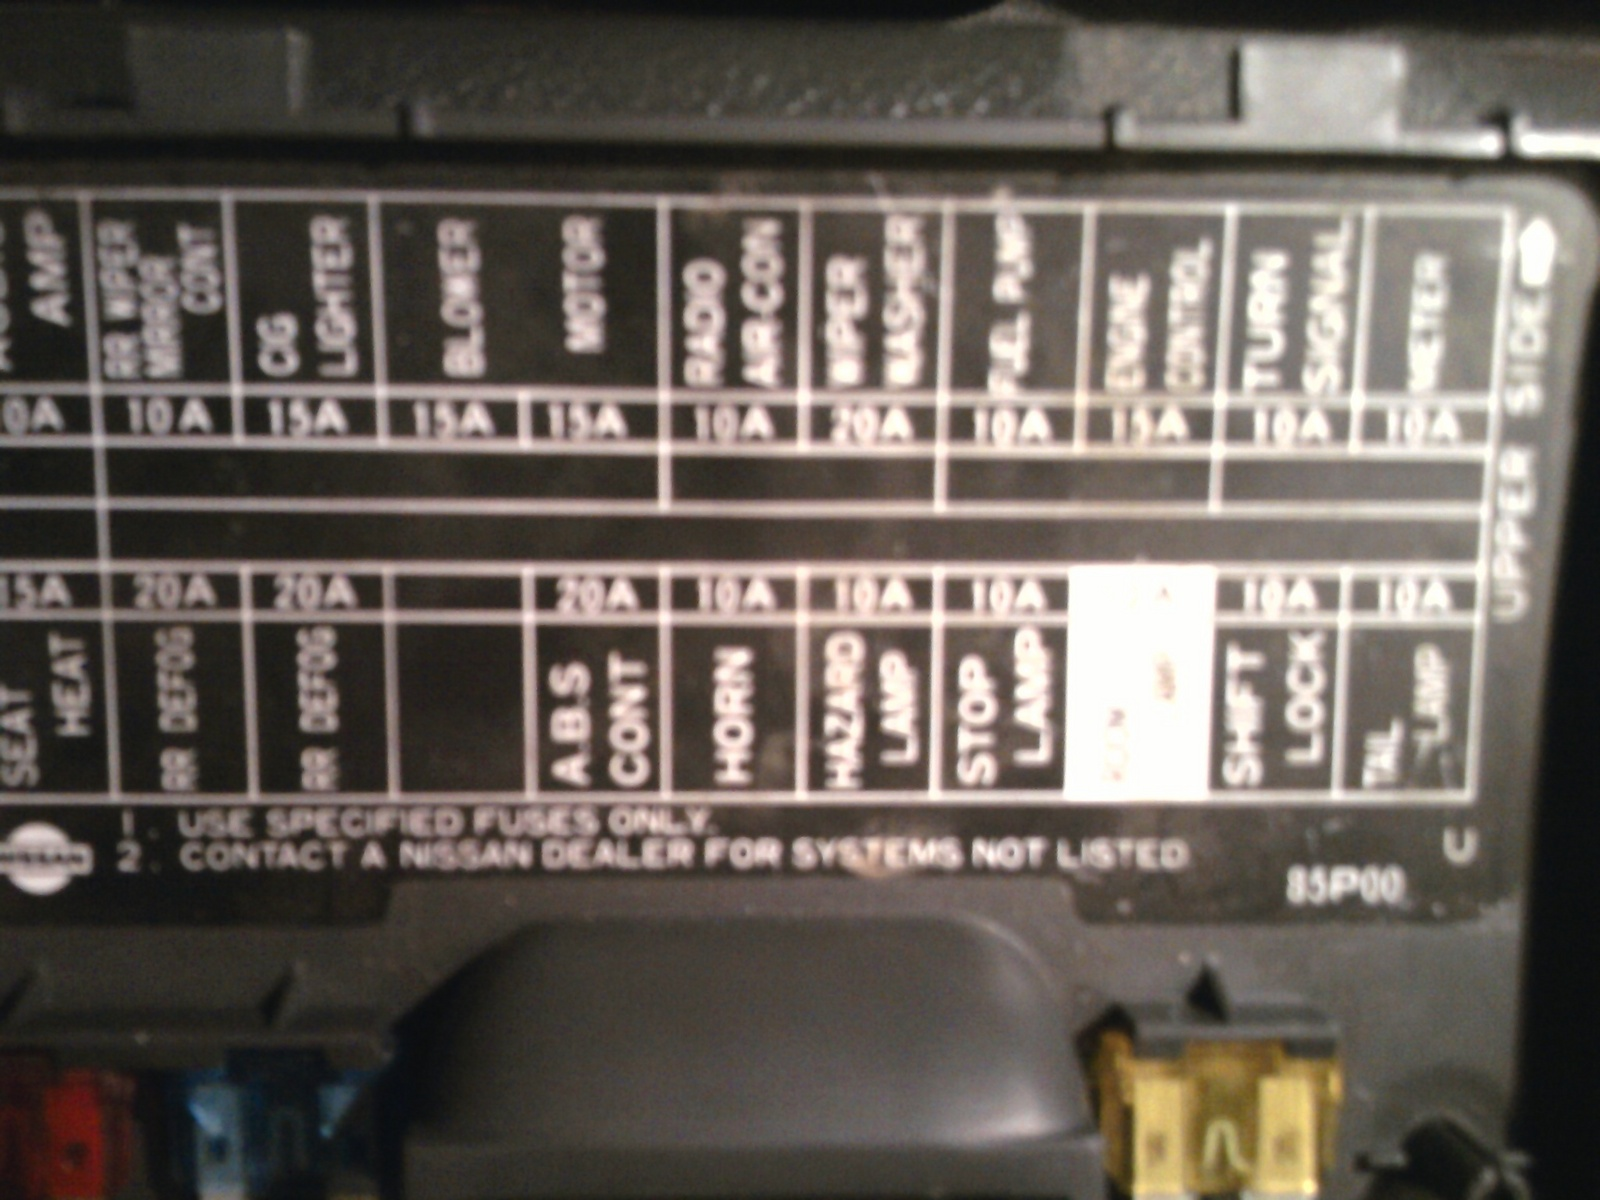 1997 Nissan Altima Fuse Box Diagram